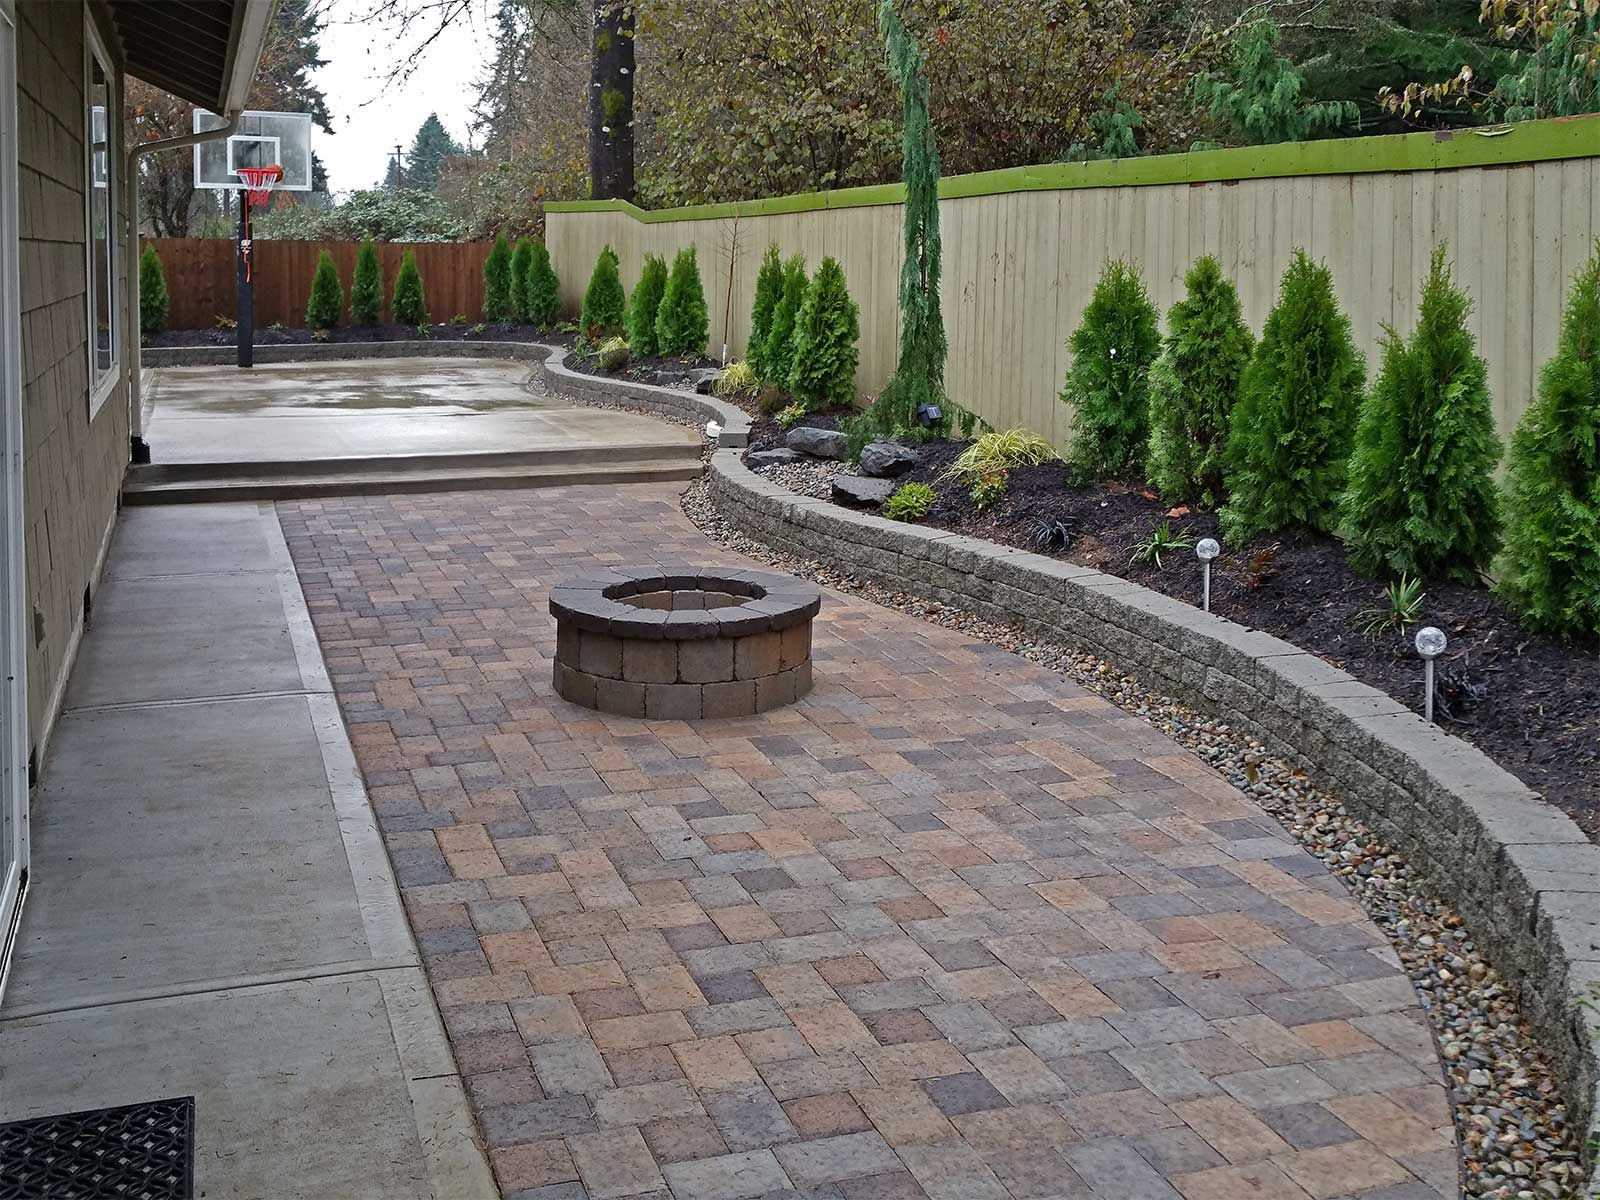 Captivating Backyard Paver Patio Connected To A Concrete Slab Basketball Court.